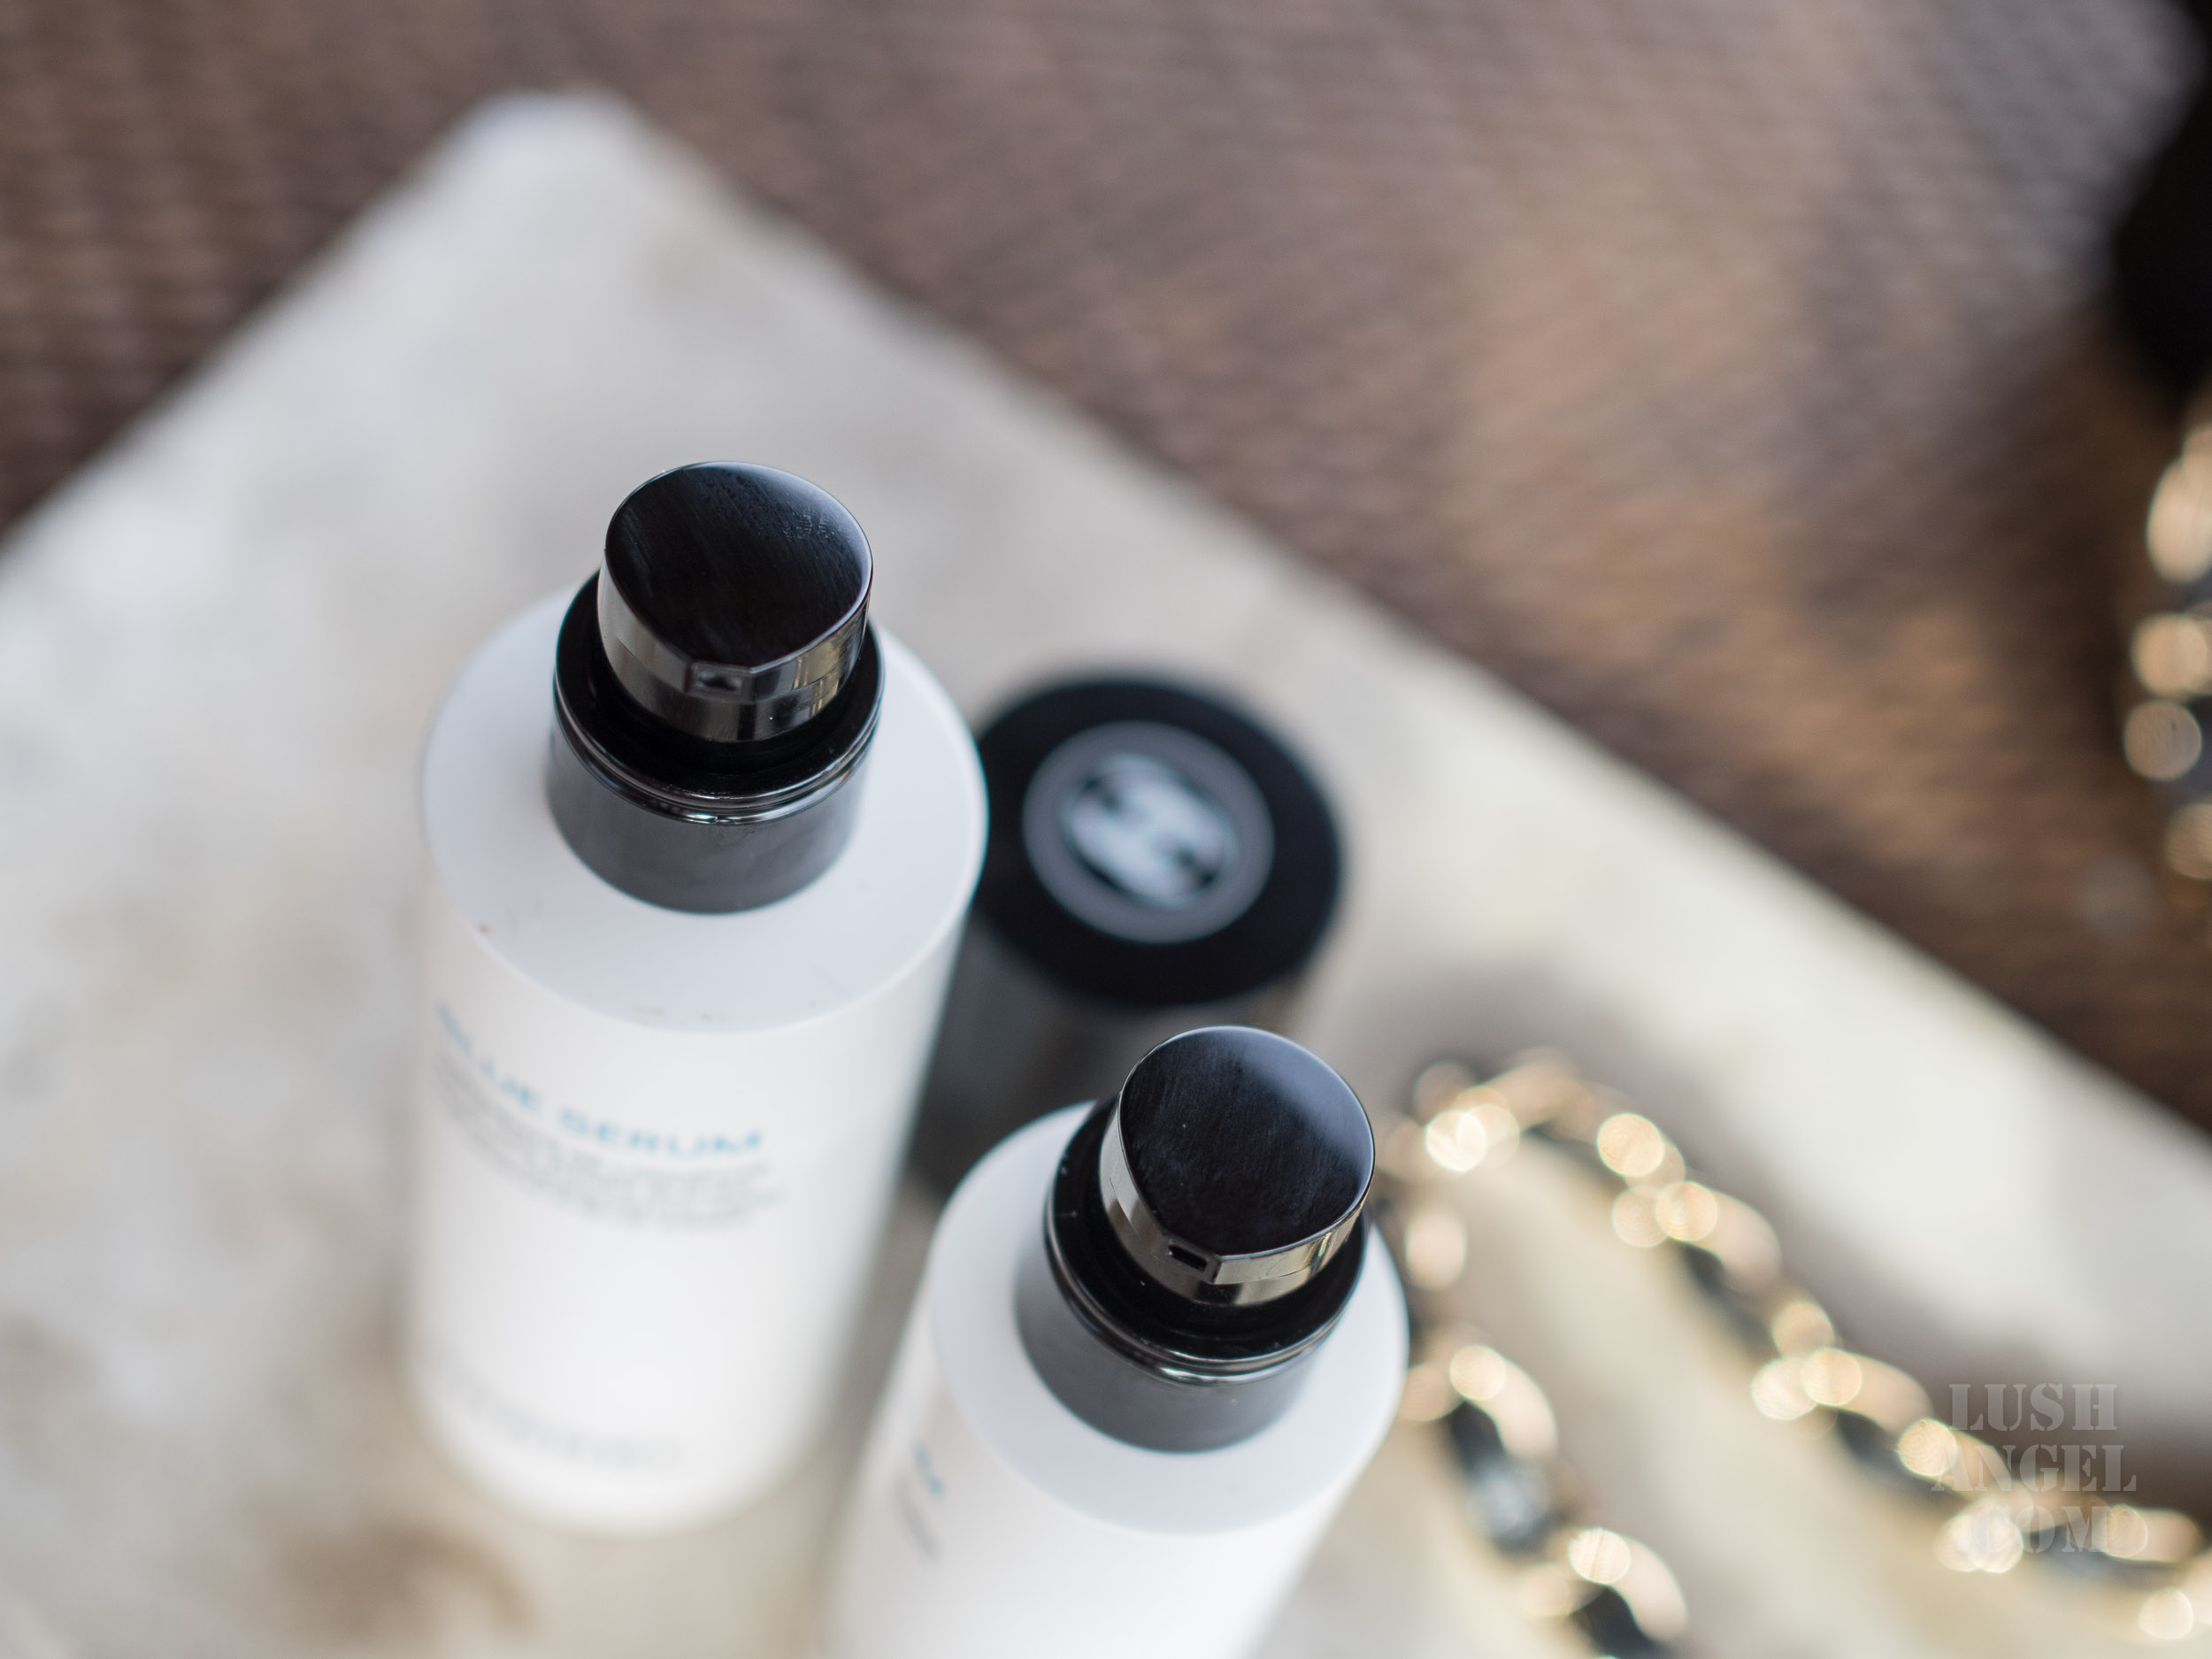 chanel-serum-review